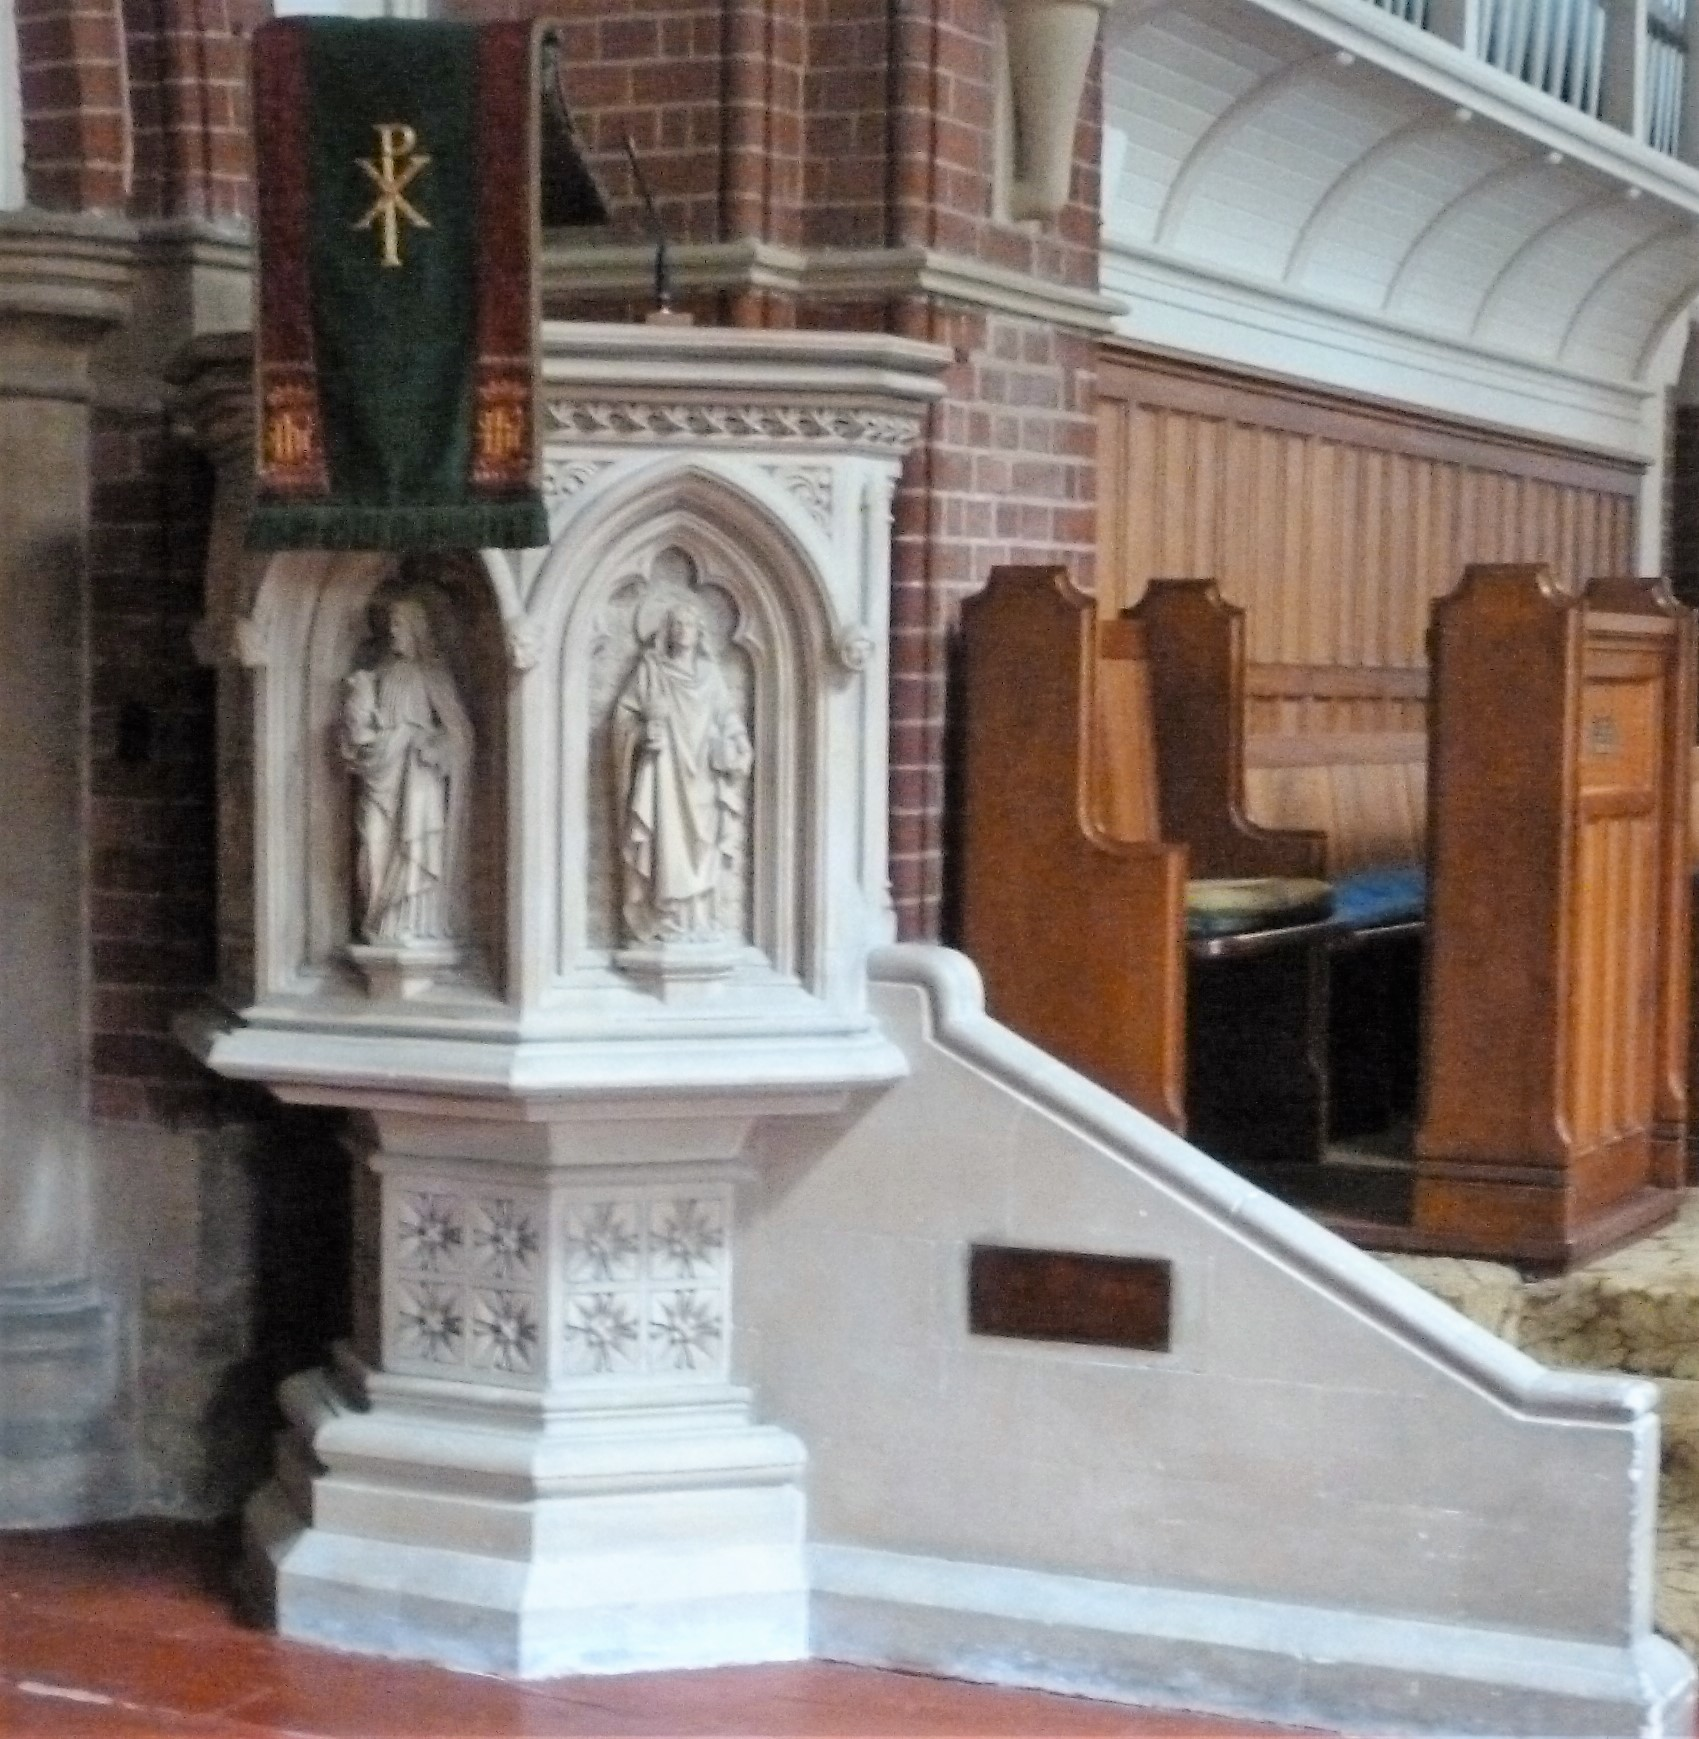 Pulpit at St. Botolph's Church, Heene